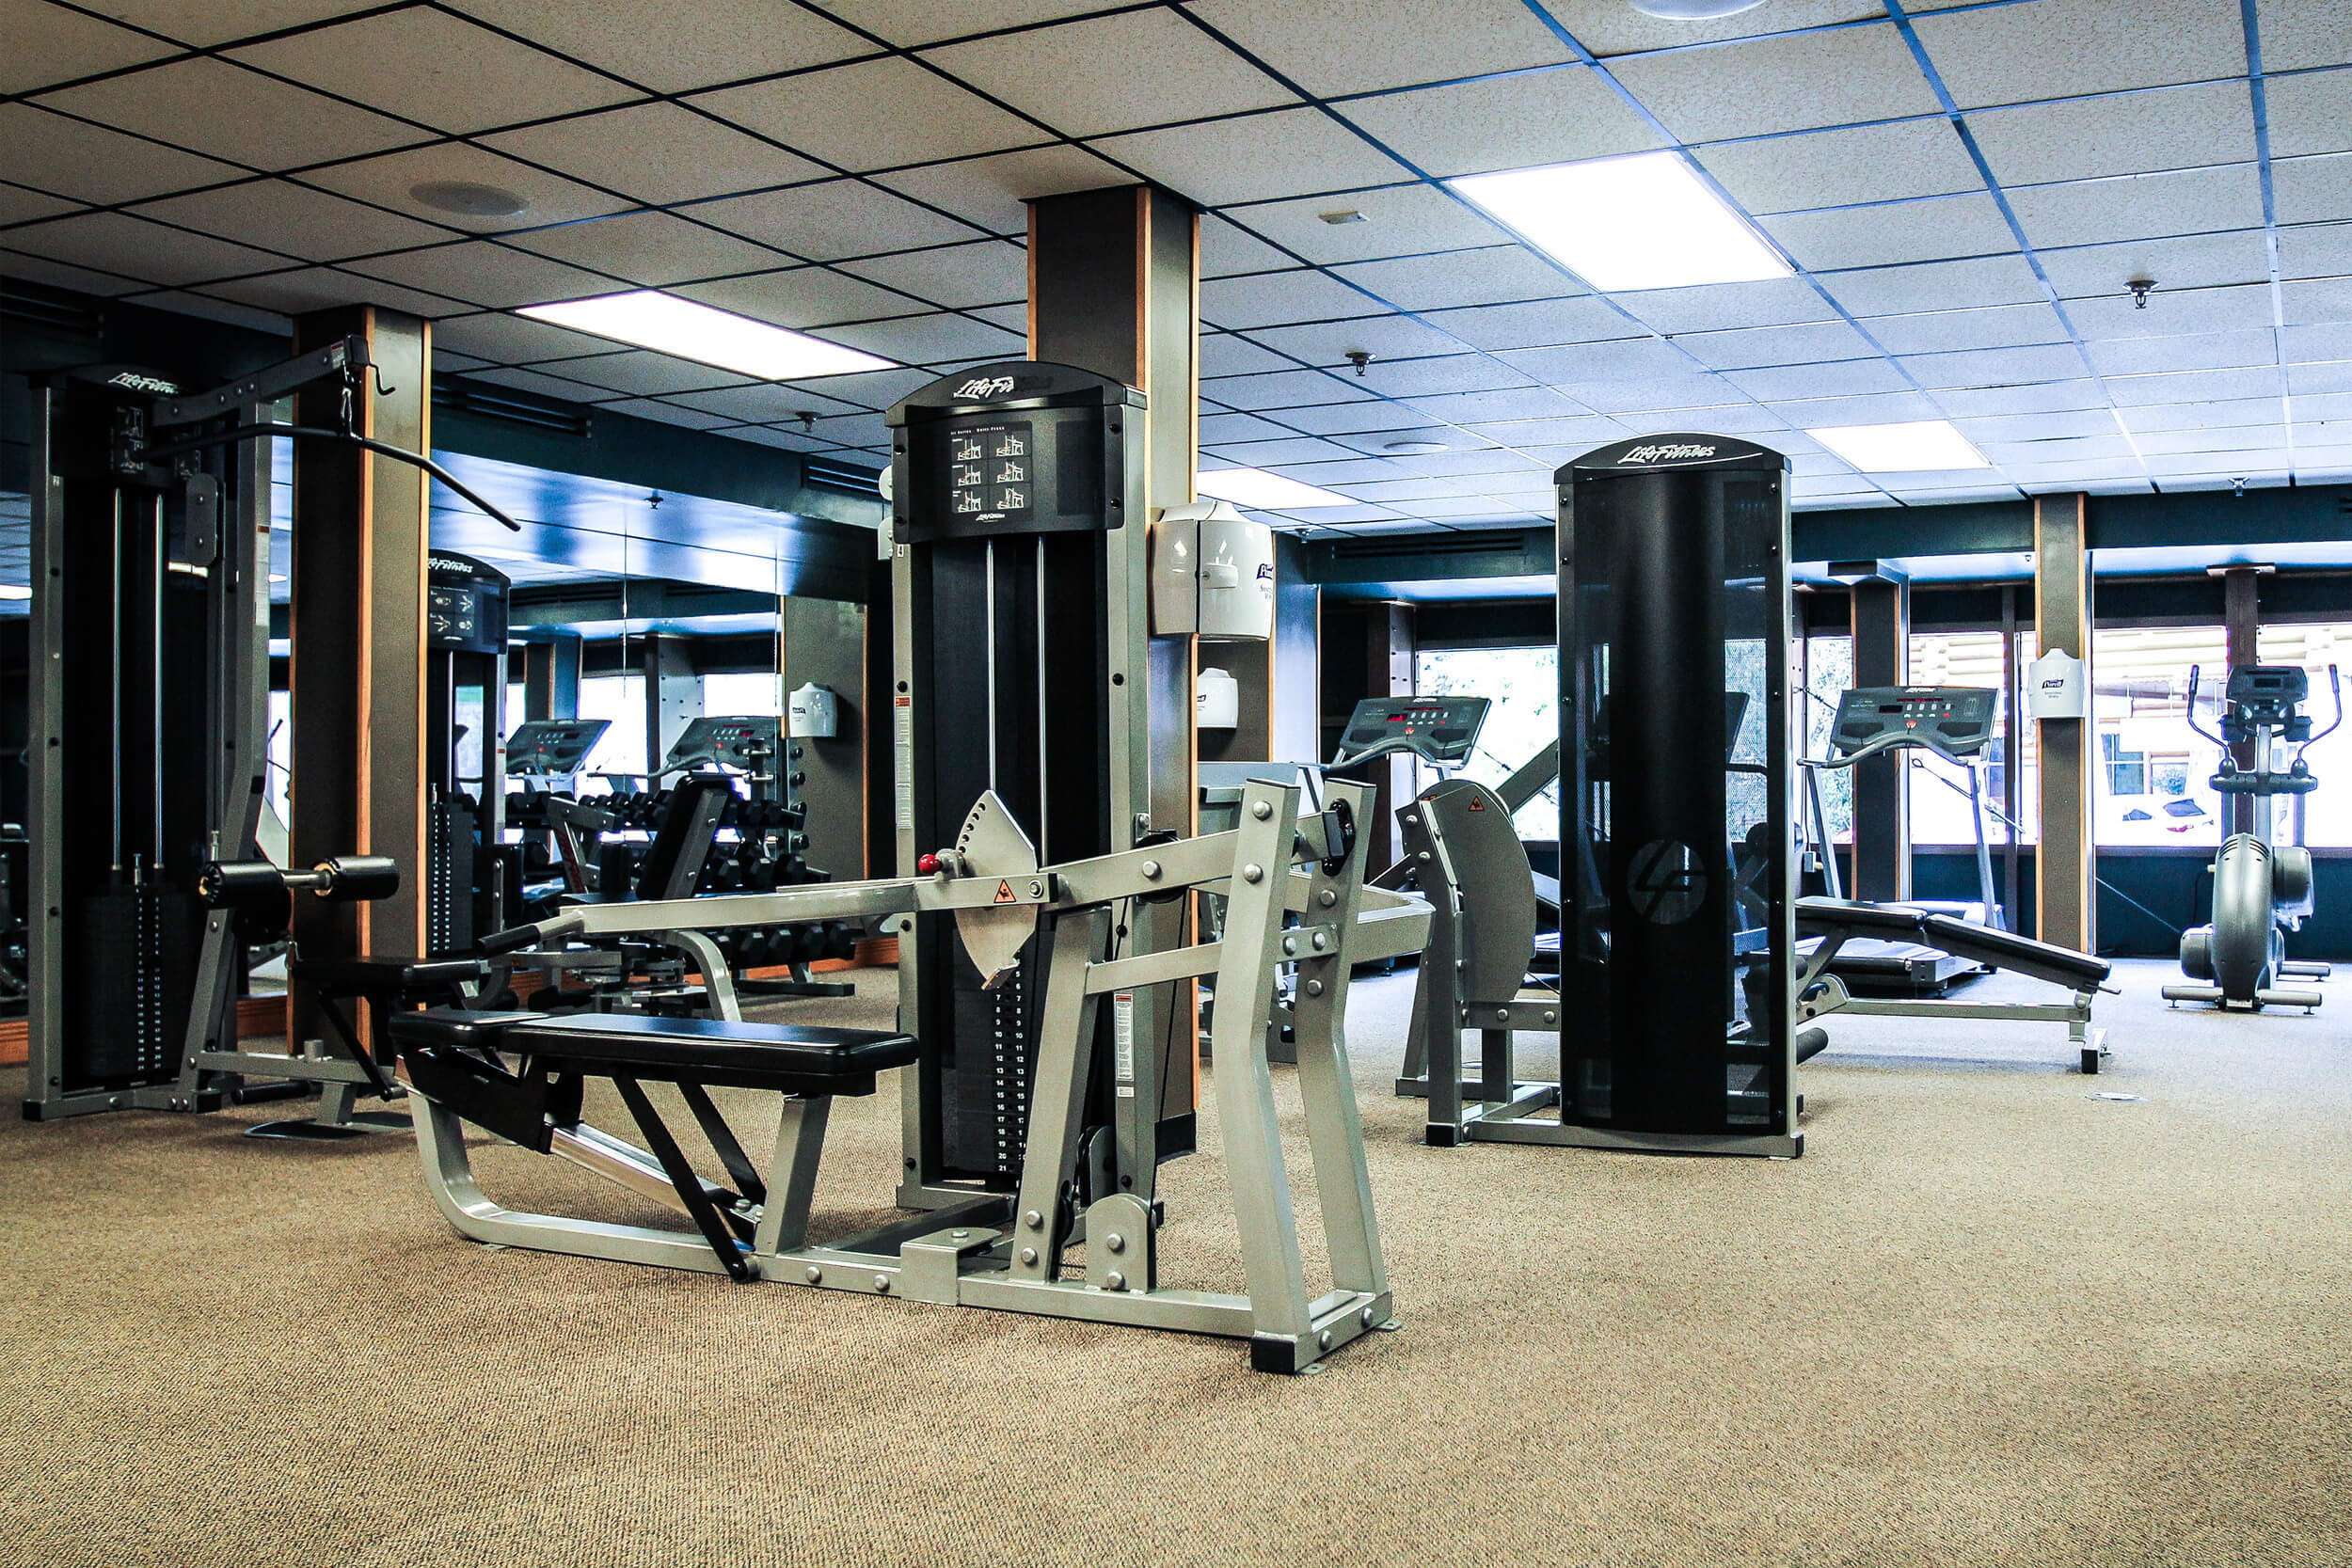 Fitness Center with state-of-the-art workout equipment | Westgate Smoky Mountain Resort & Spa